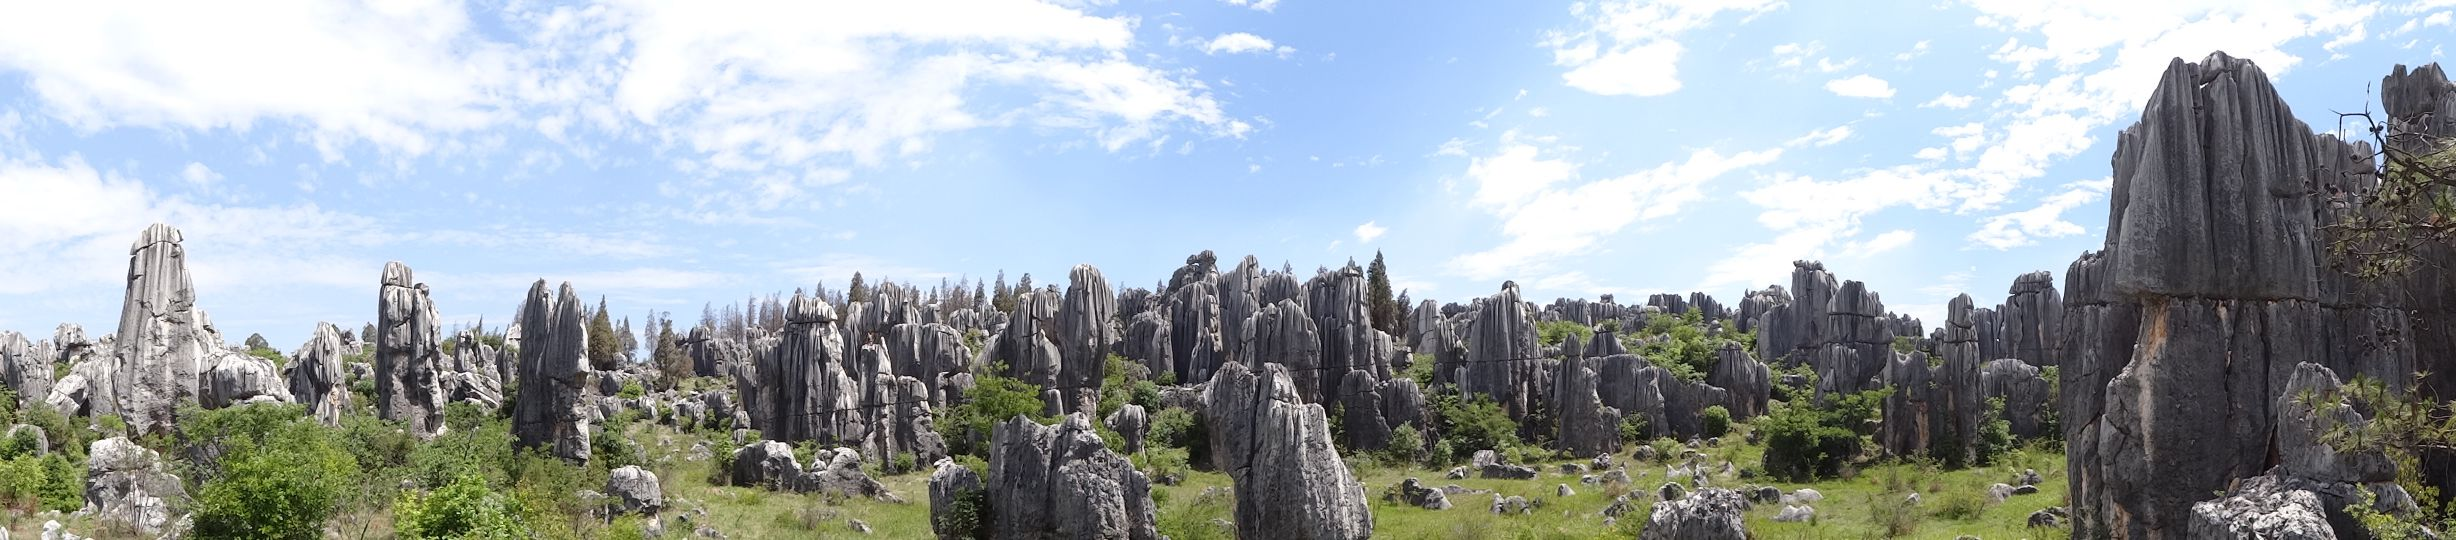 Shilin Stone Forest near Kunming